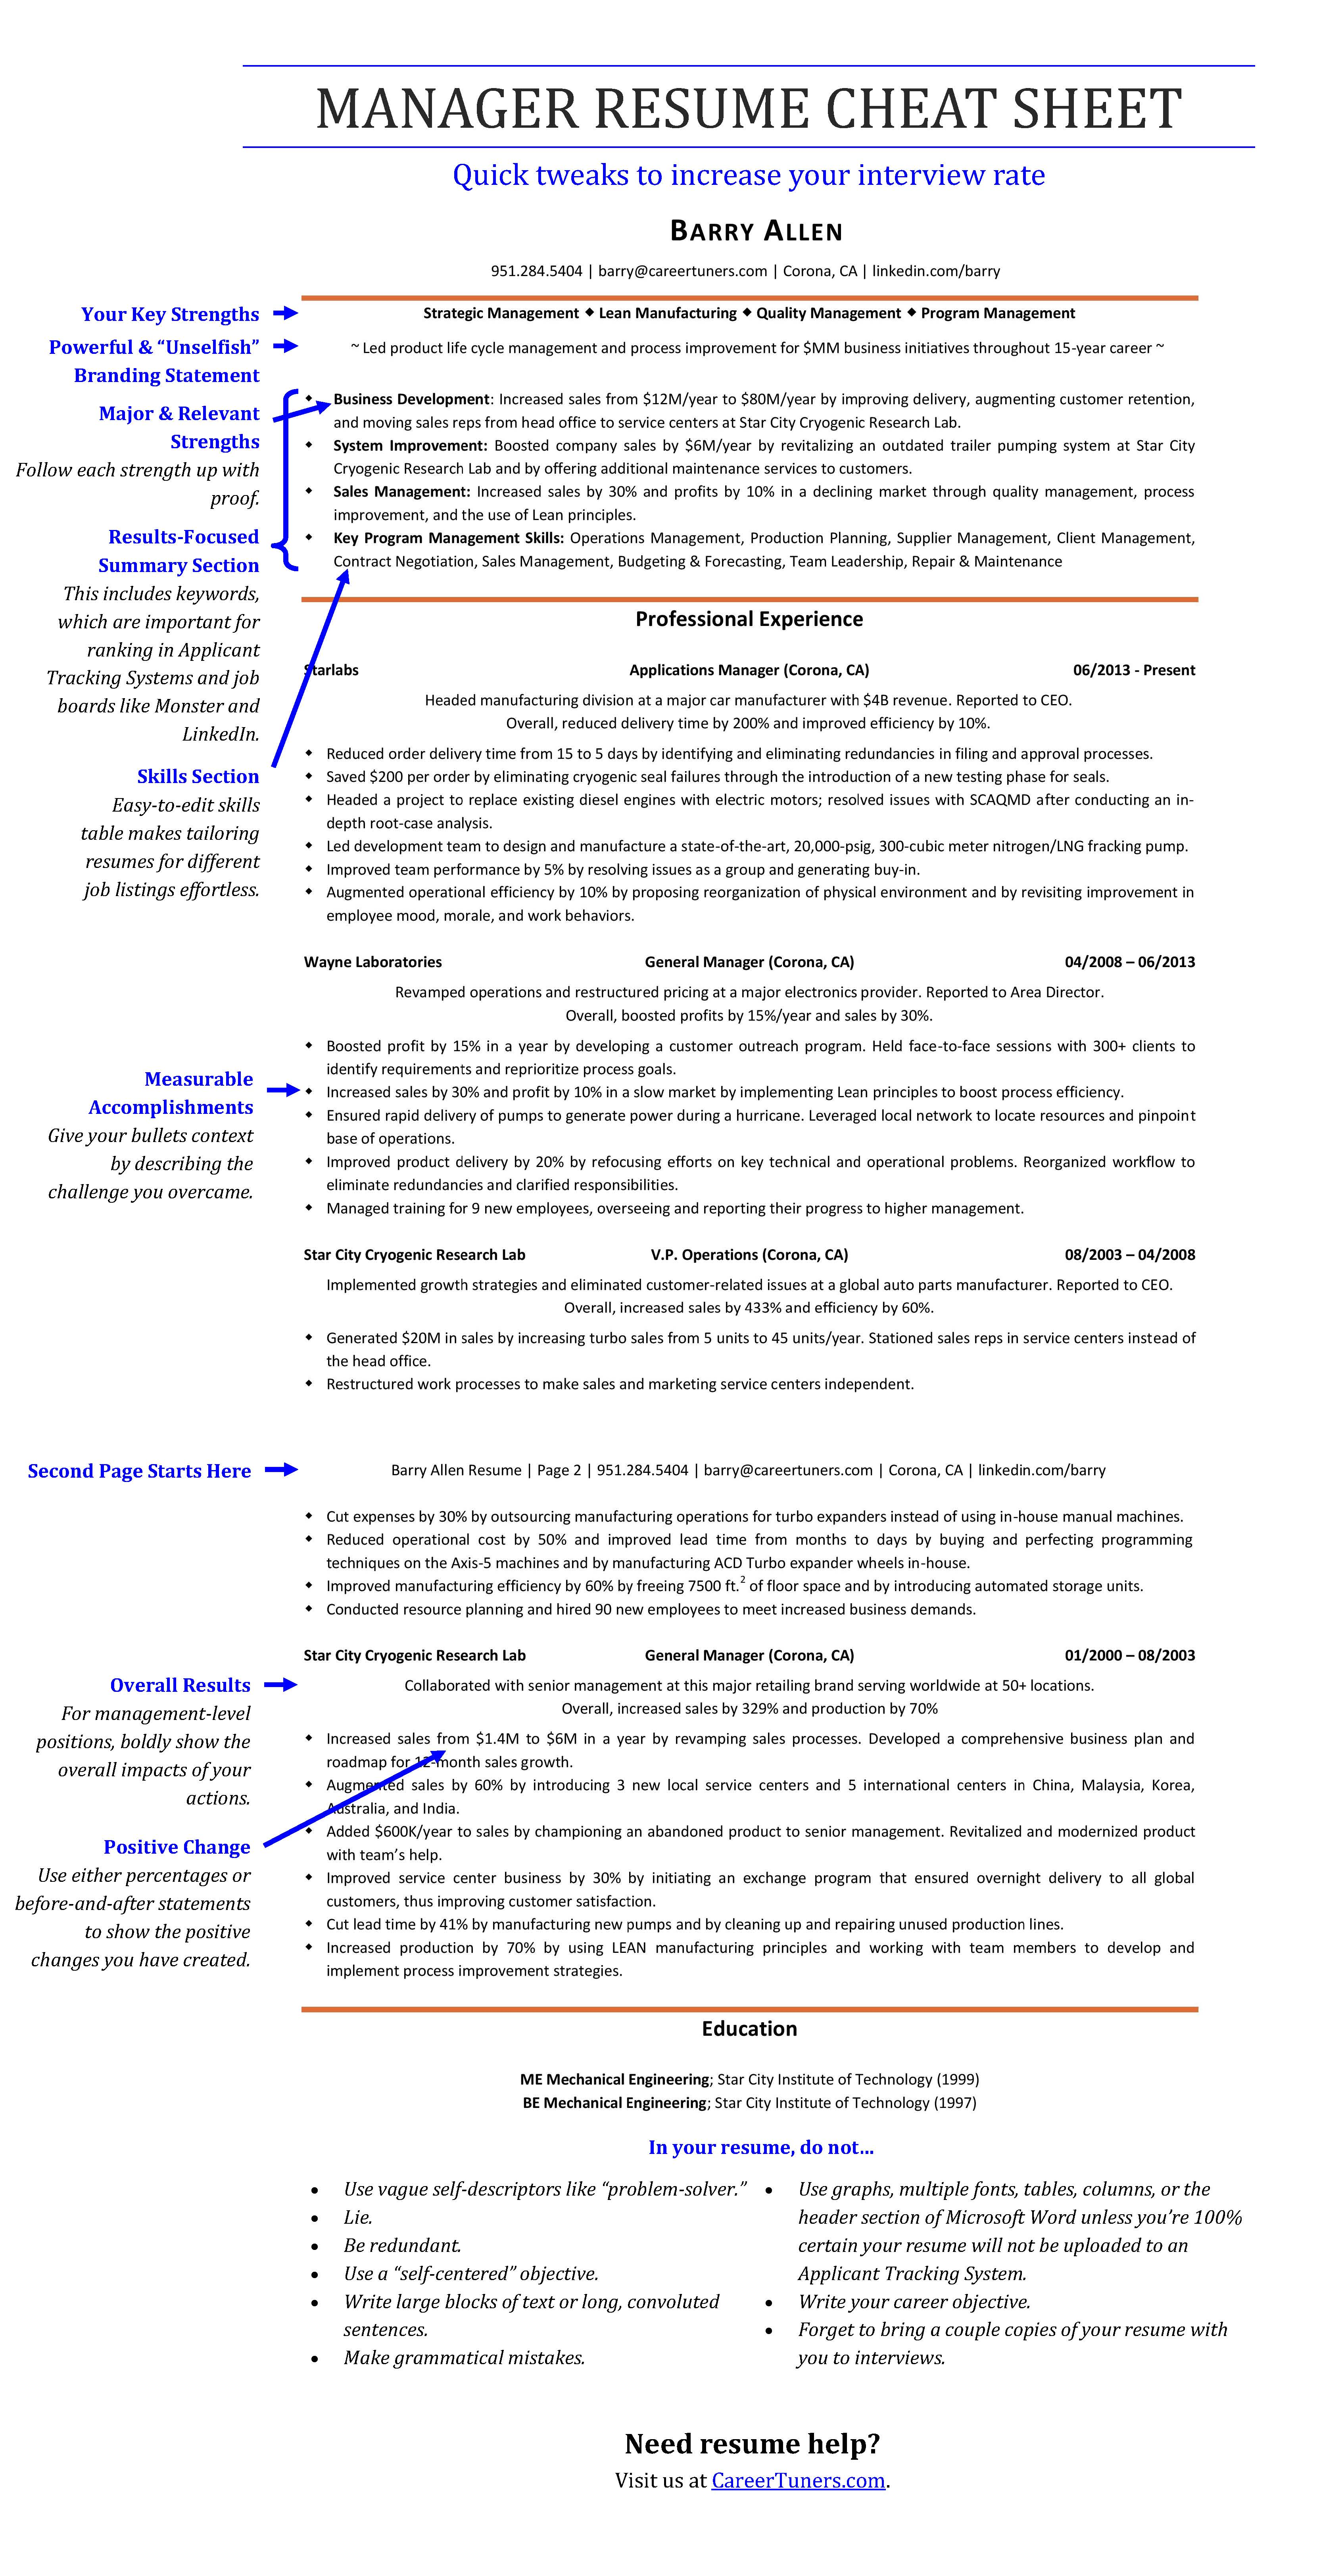 Attractive Resume Cheat Sheet Mold - Documentation Template Example ...